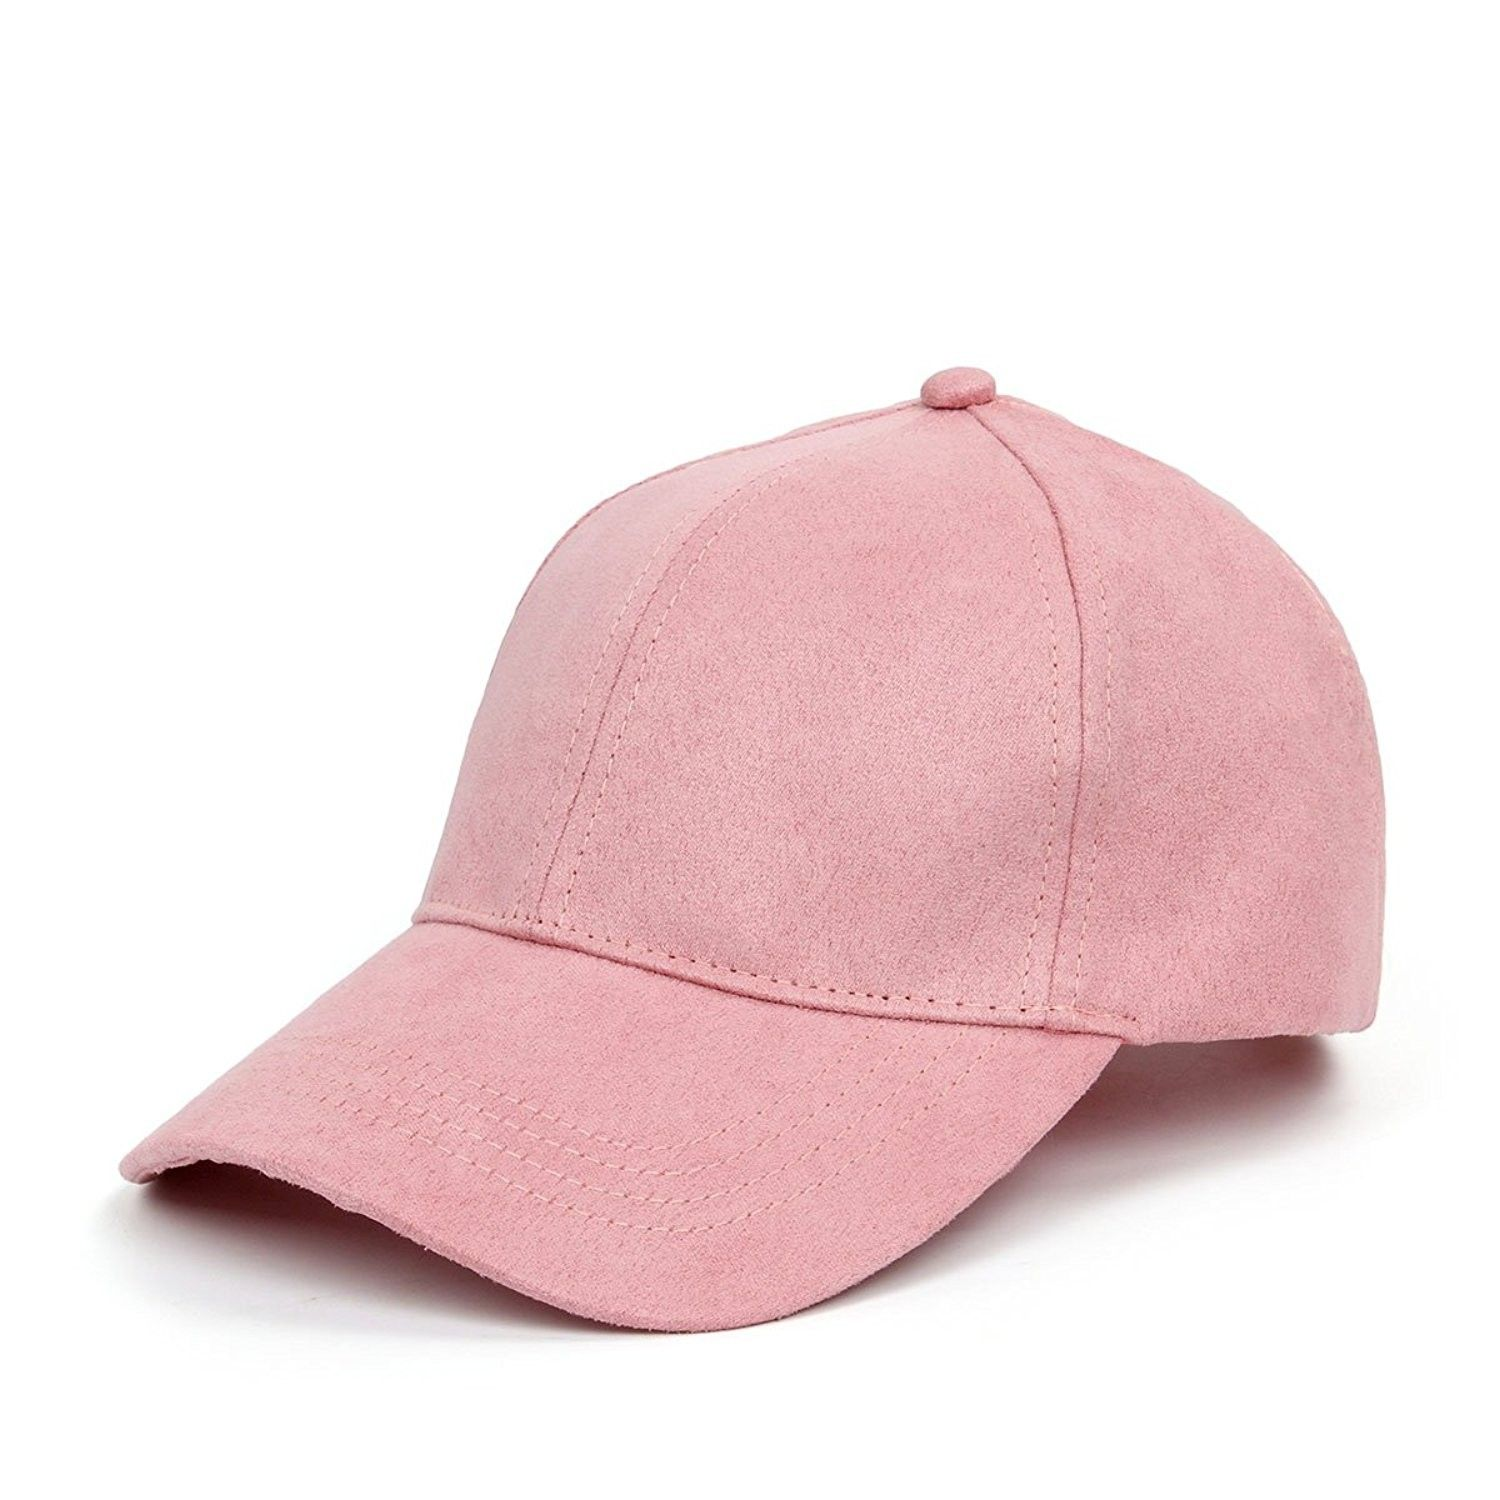 b2f7409af50 Soft Faux Suede Leather Baseball Cap Adjustable Classic Sports Hat - Dark  Pink - C51824ZMWT8-